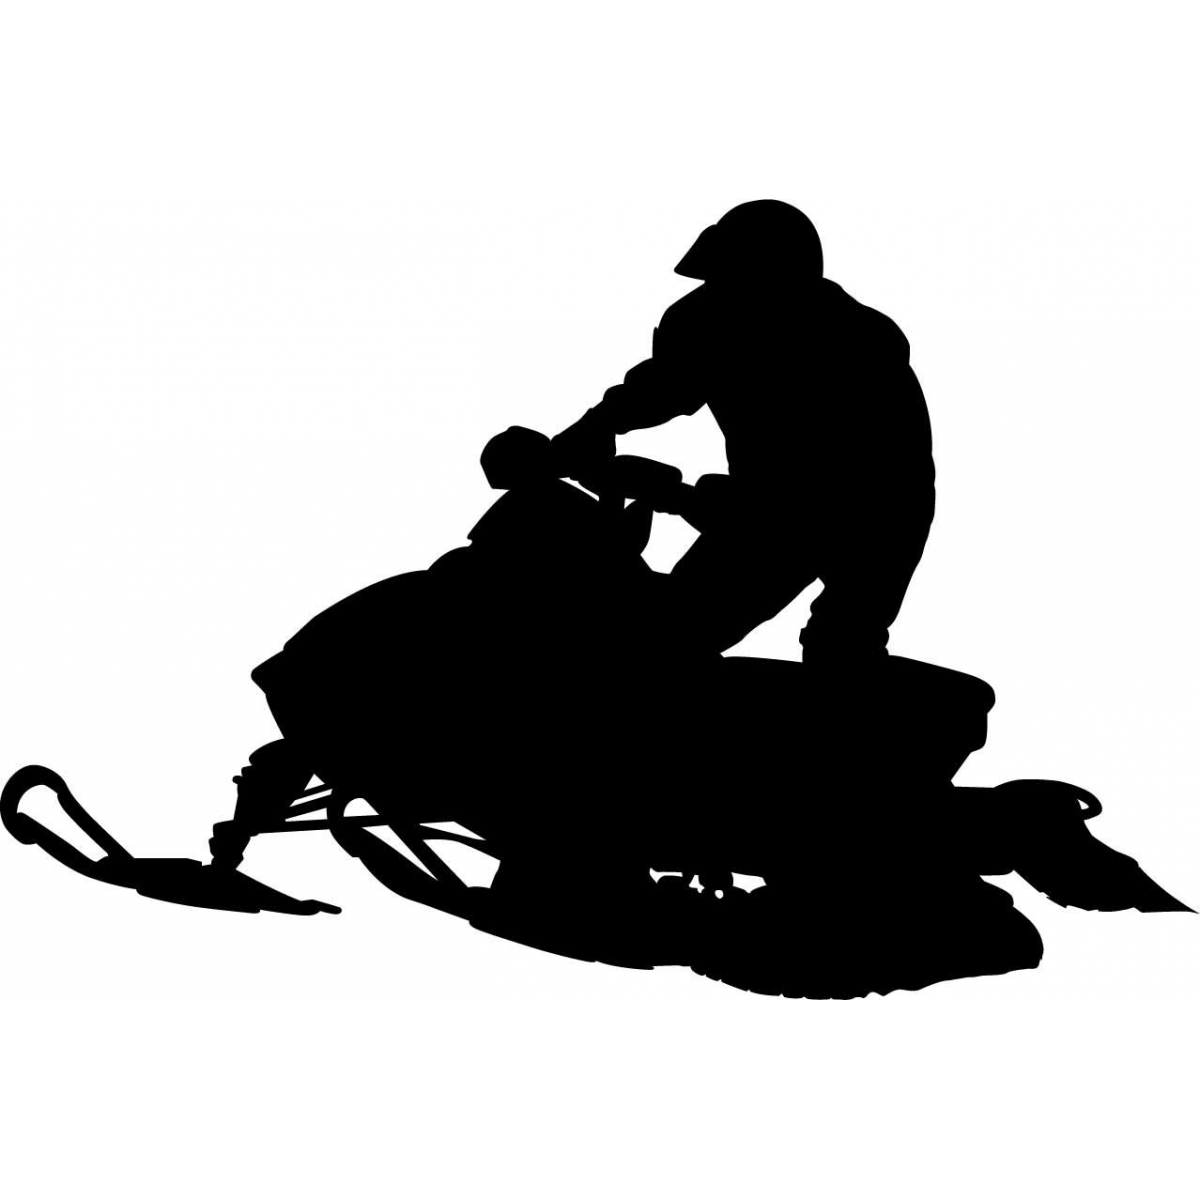 Snowmobile clipart png black and white download Free Snowmobile Cliparts, Download Free Clip Art, Free Clip ... png black and white download